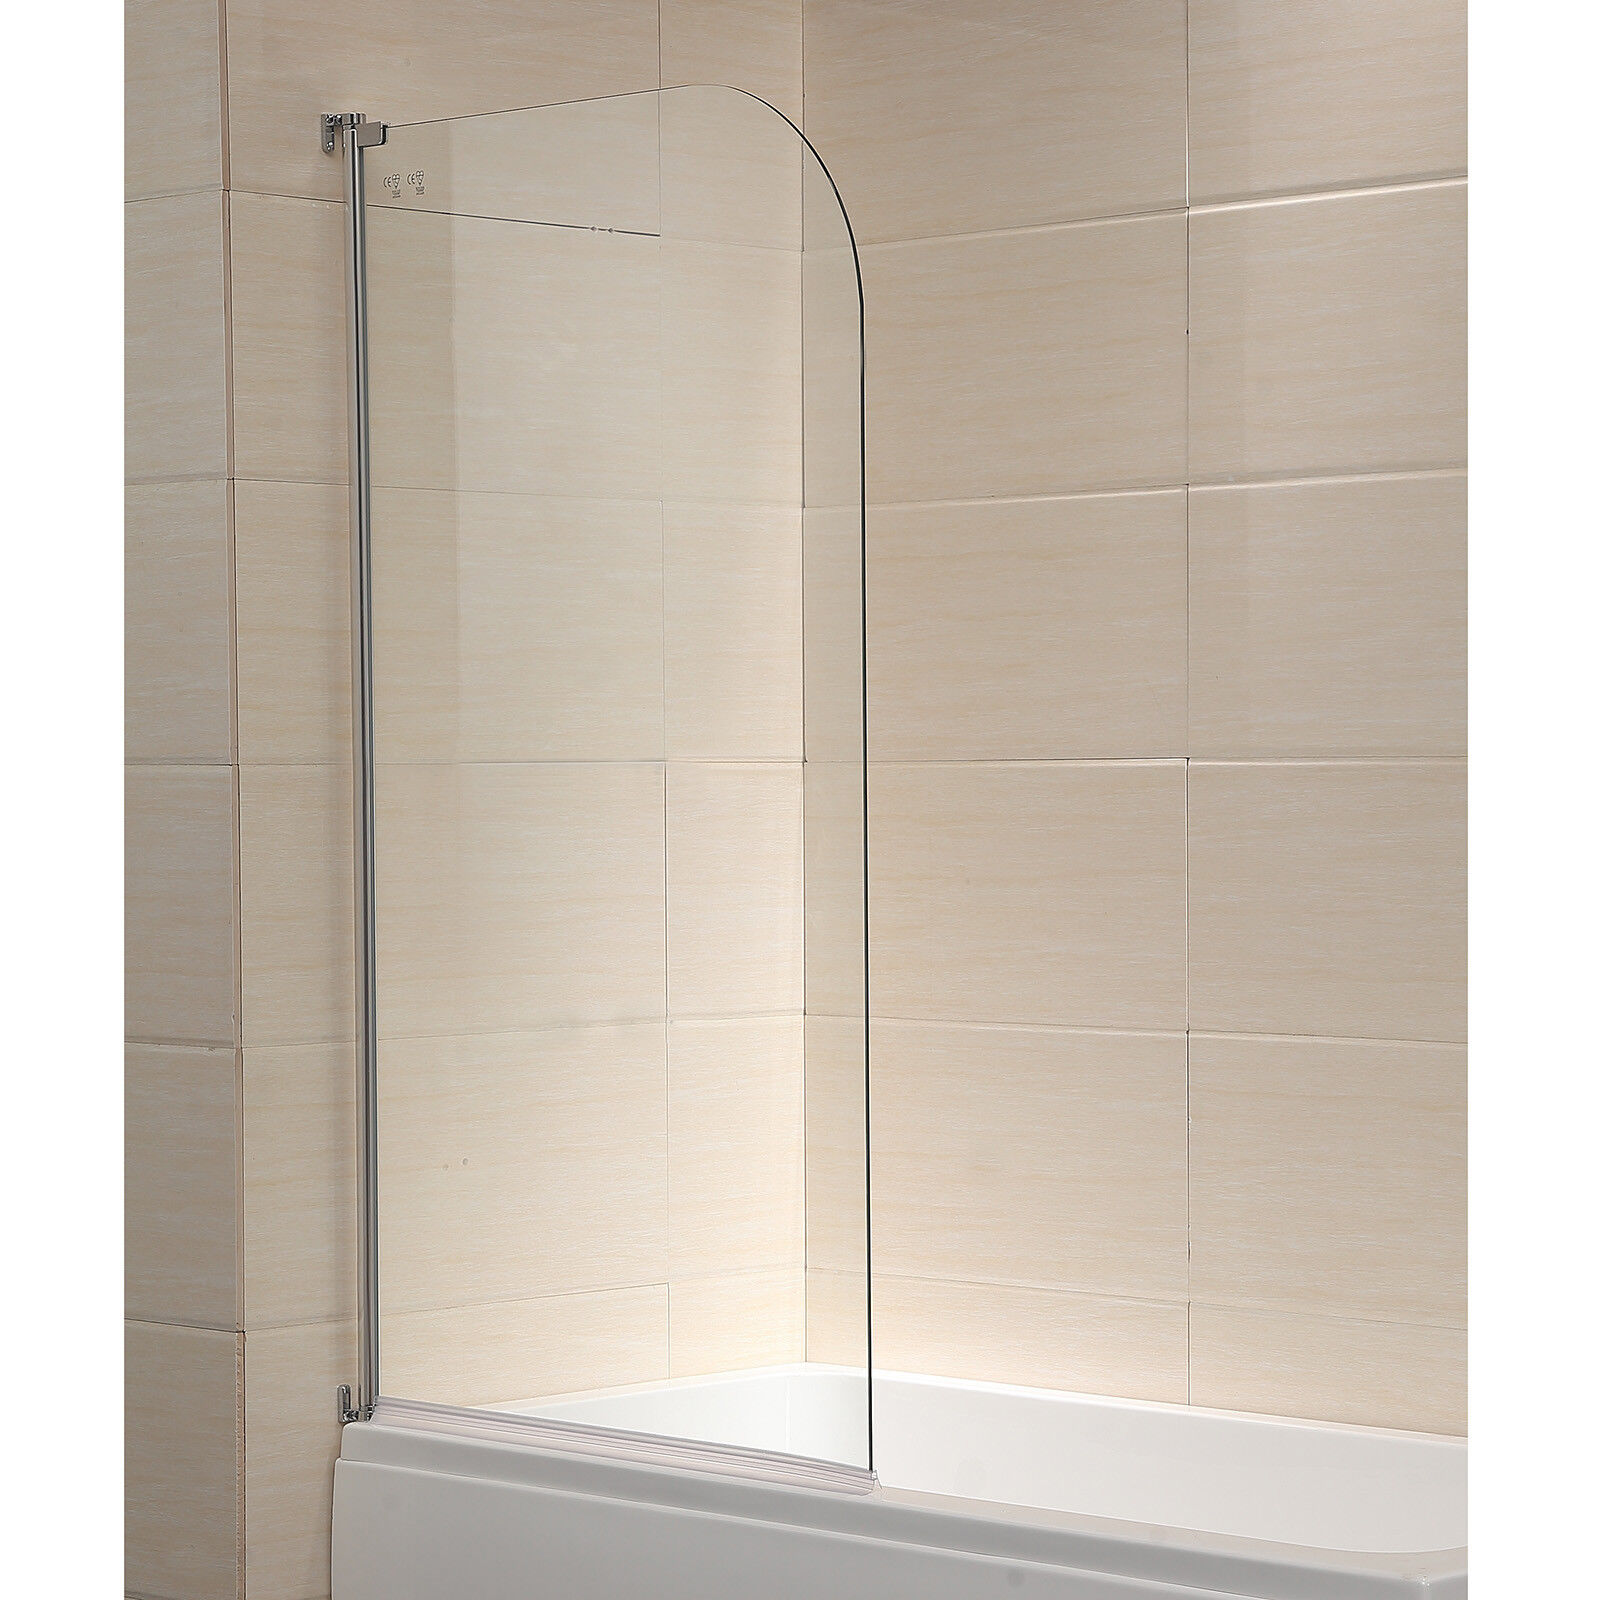 Details About 55x31 1 4 Thick Clear Glass 180 Pivot Radius Framed Shower Door Chrome Finish